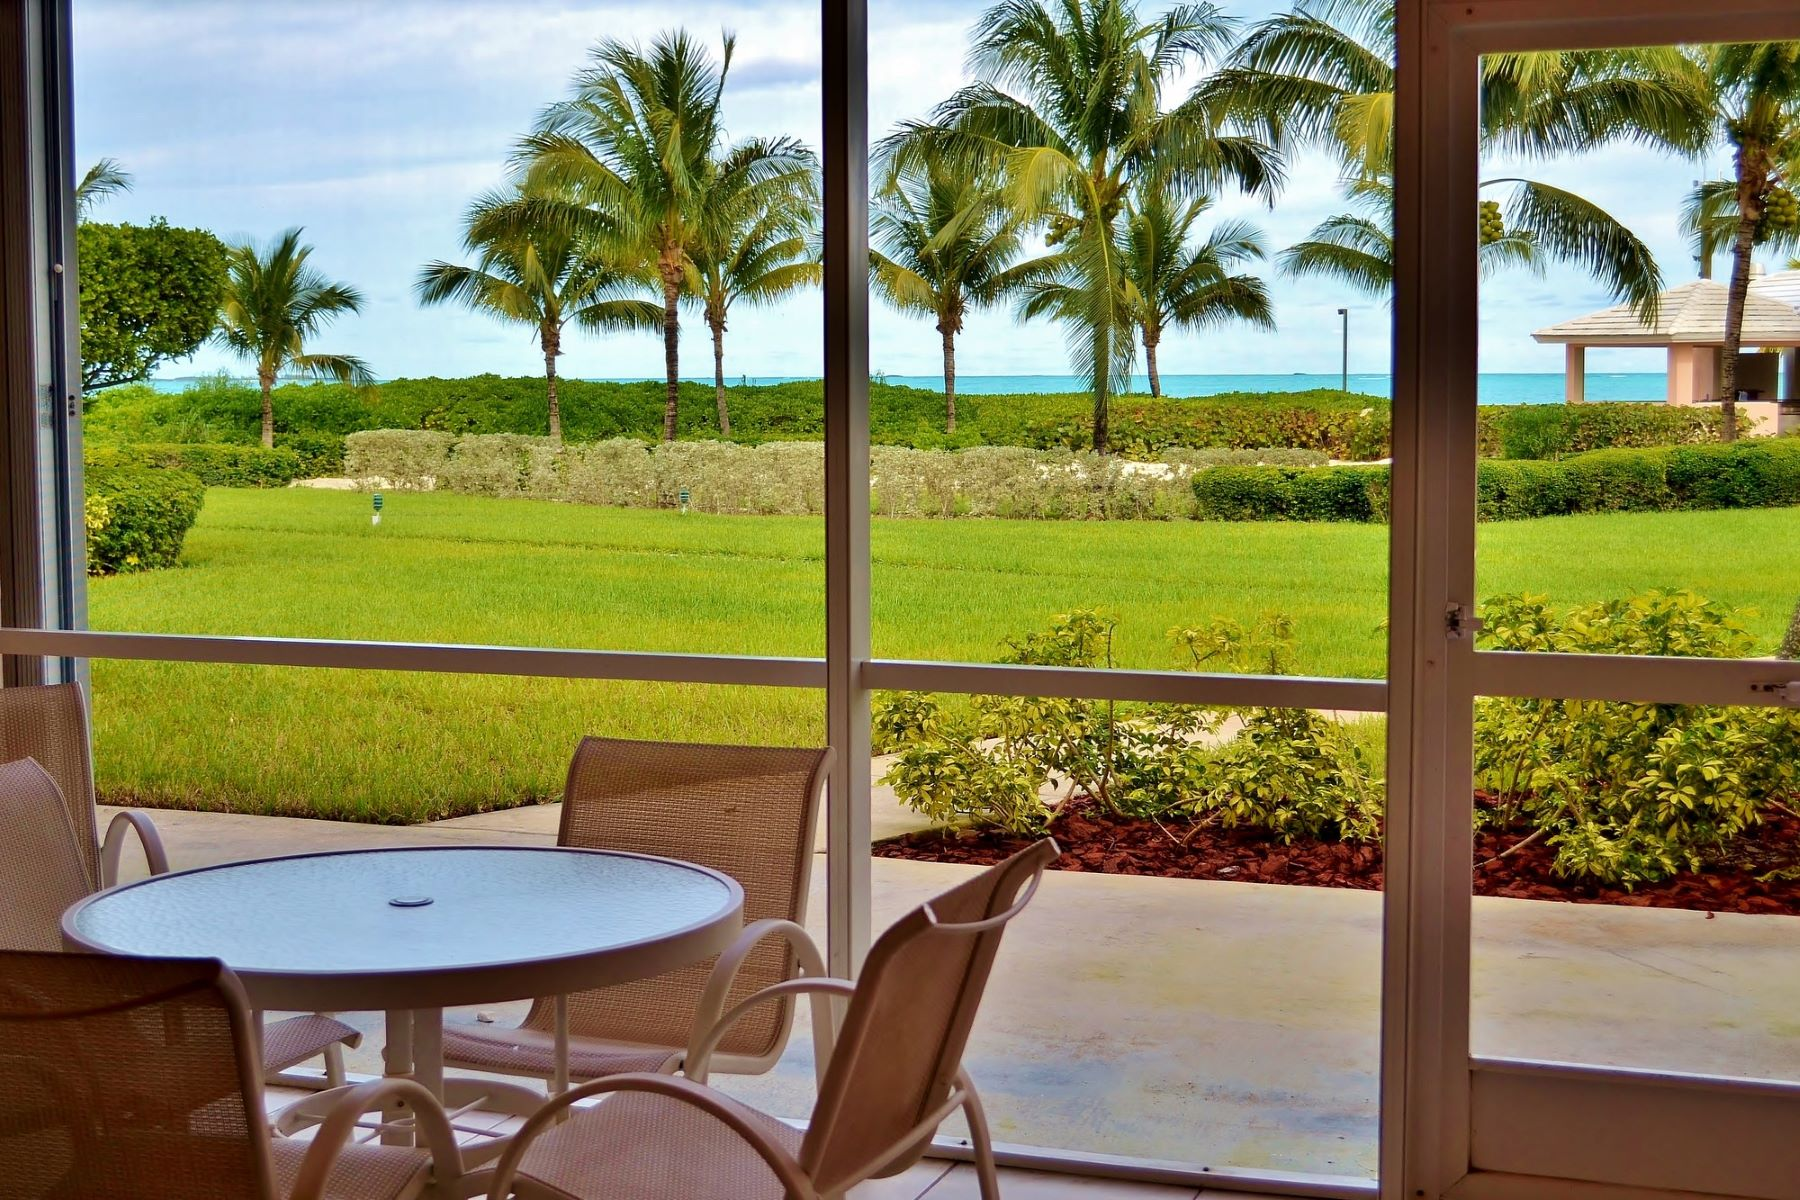 Additional photo for property listing at Bahama Beach Club 2055 Bahama Beach Club, Treasure Cay, Abaco Bahamas